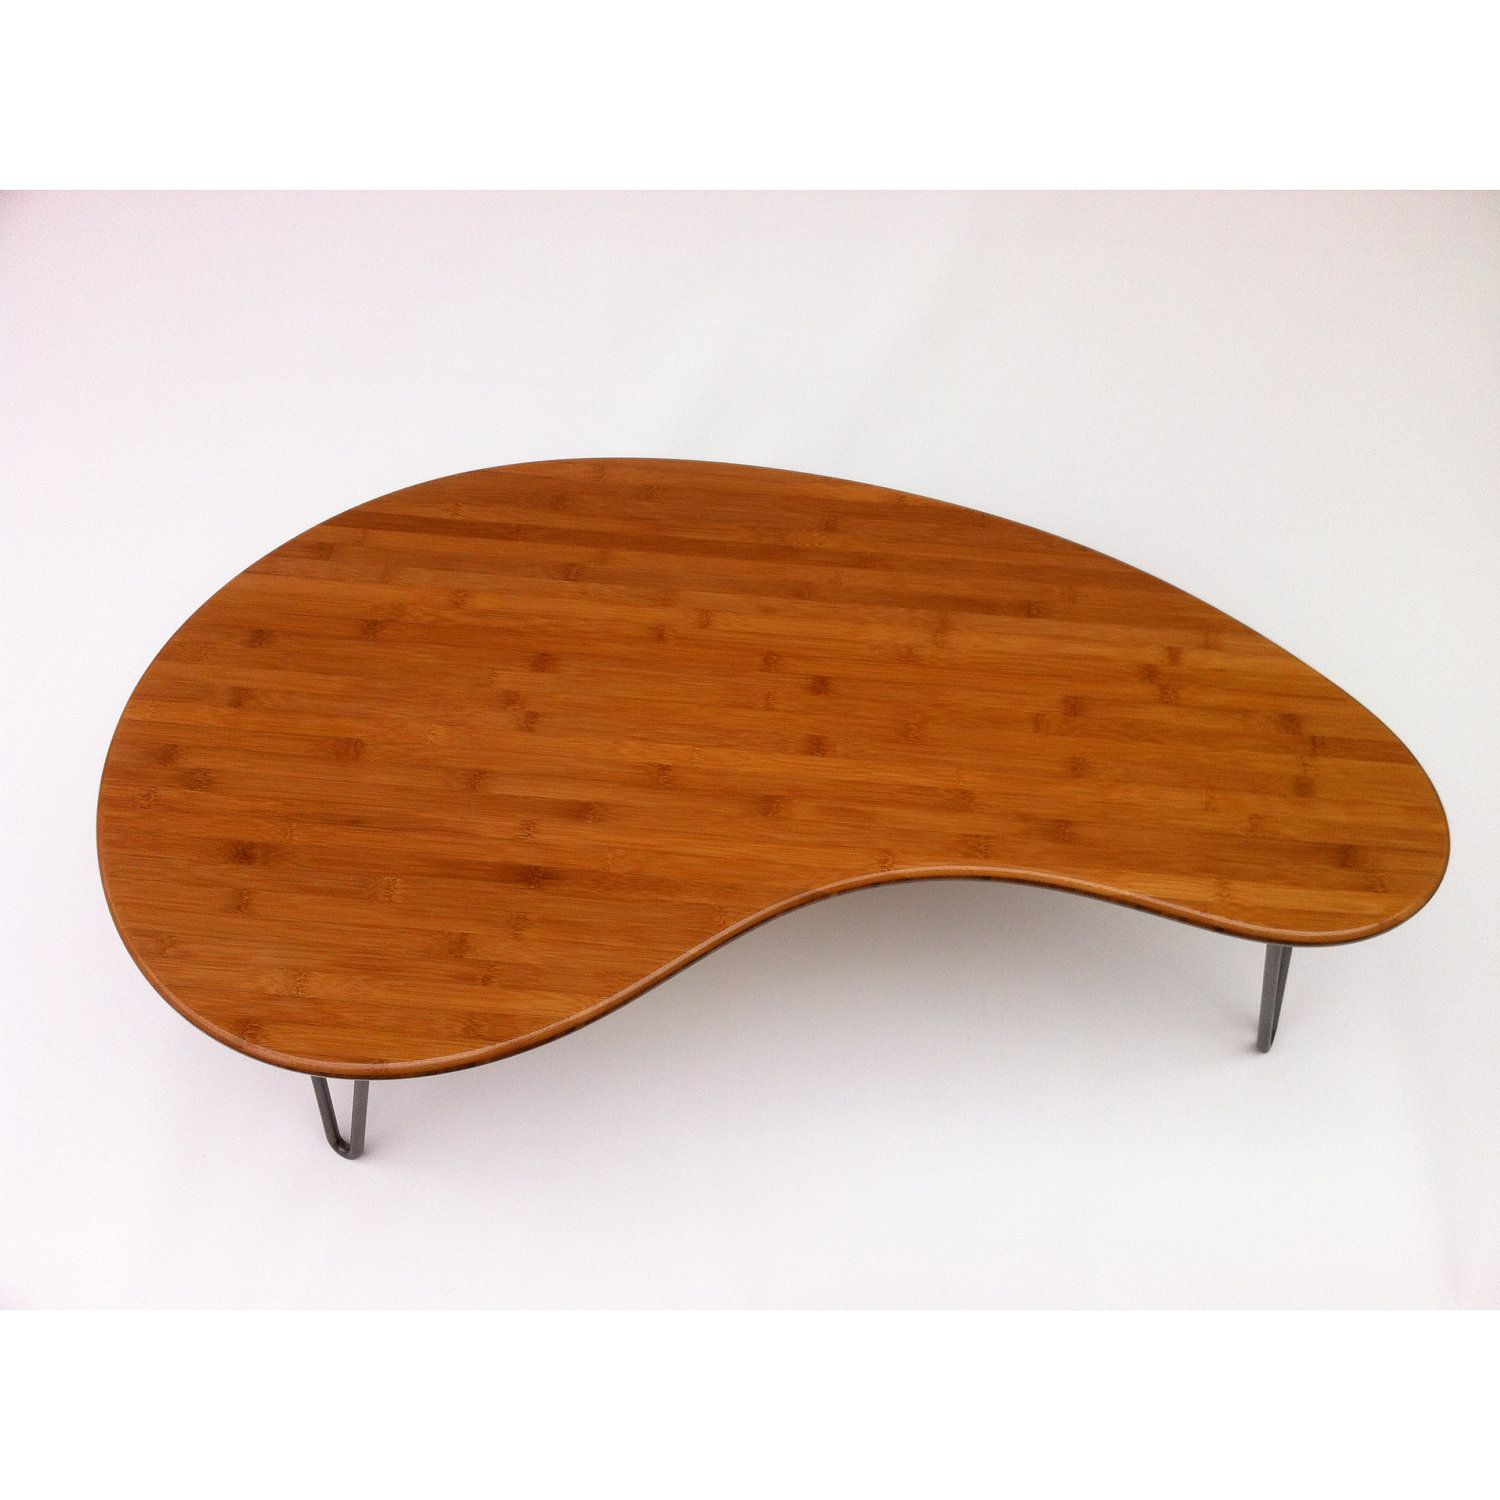 Mid Century Modern Coffee Table Kidney Bean Shaped Atomic Eames